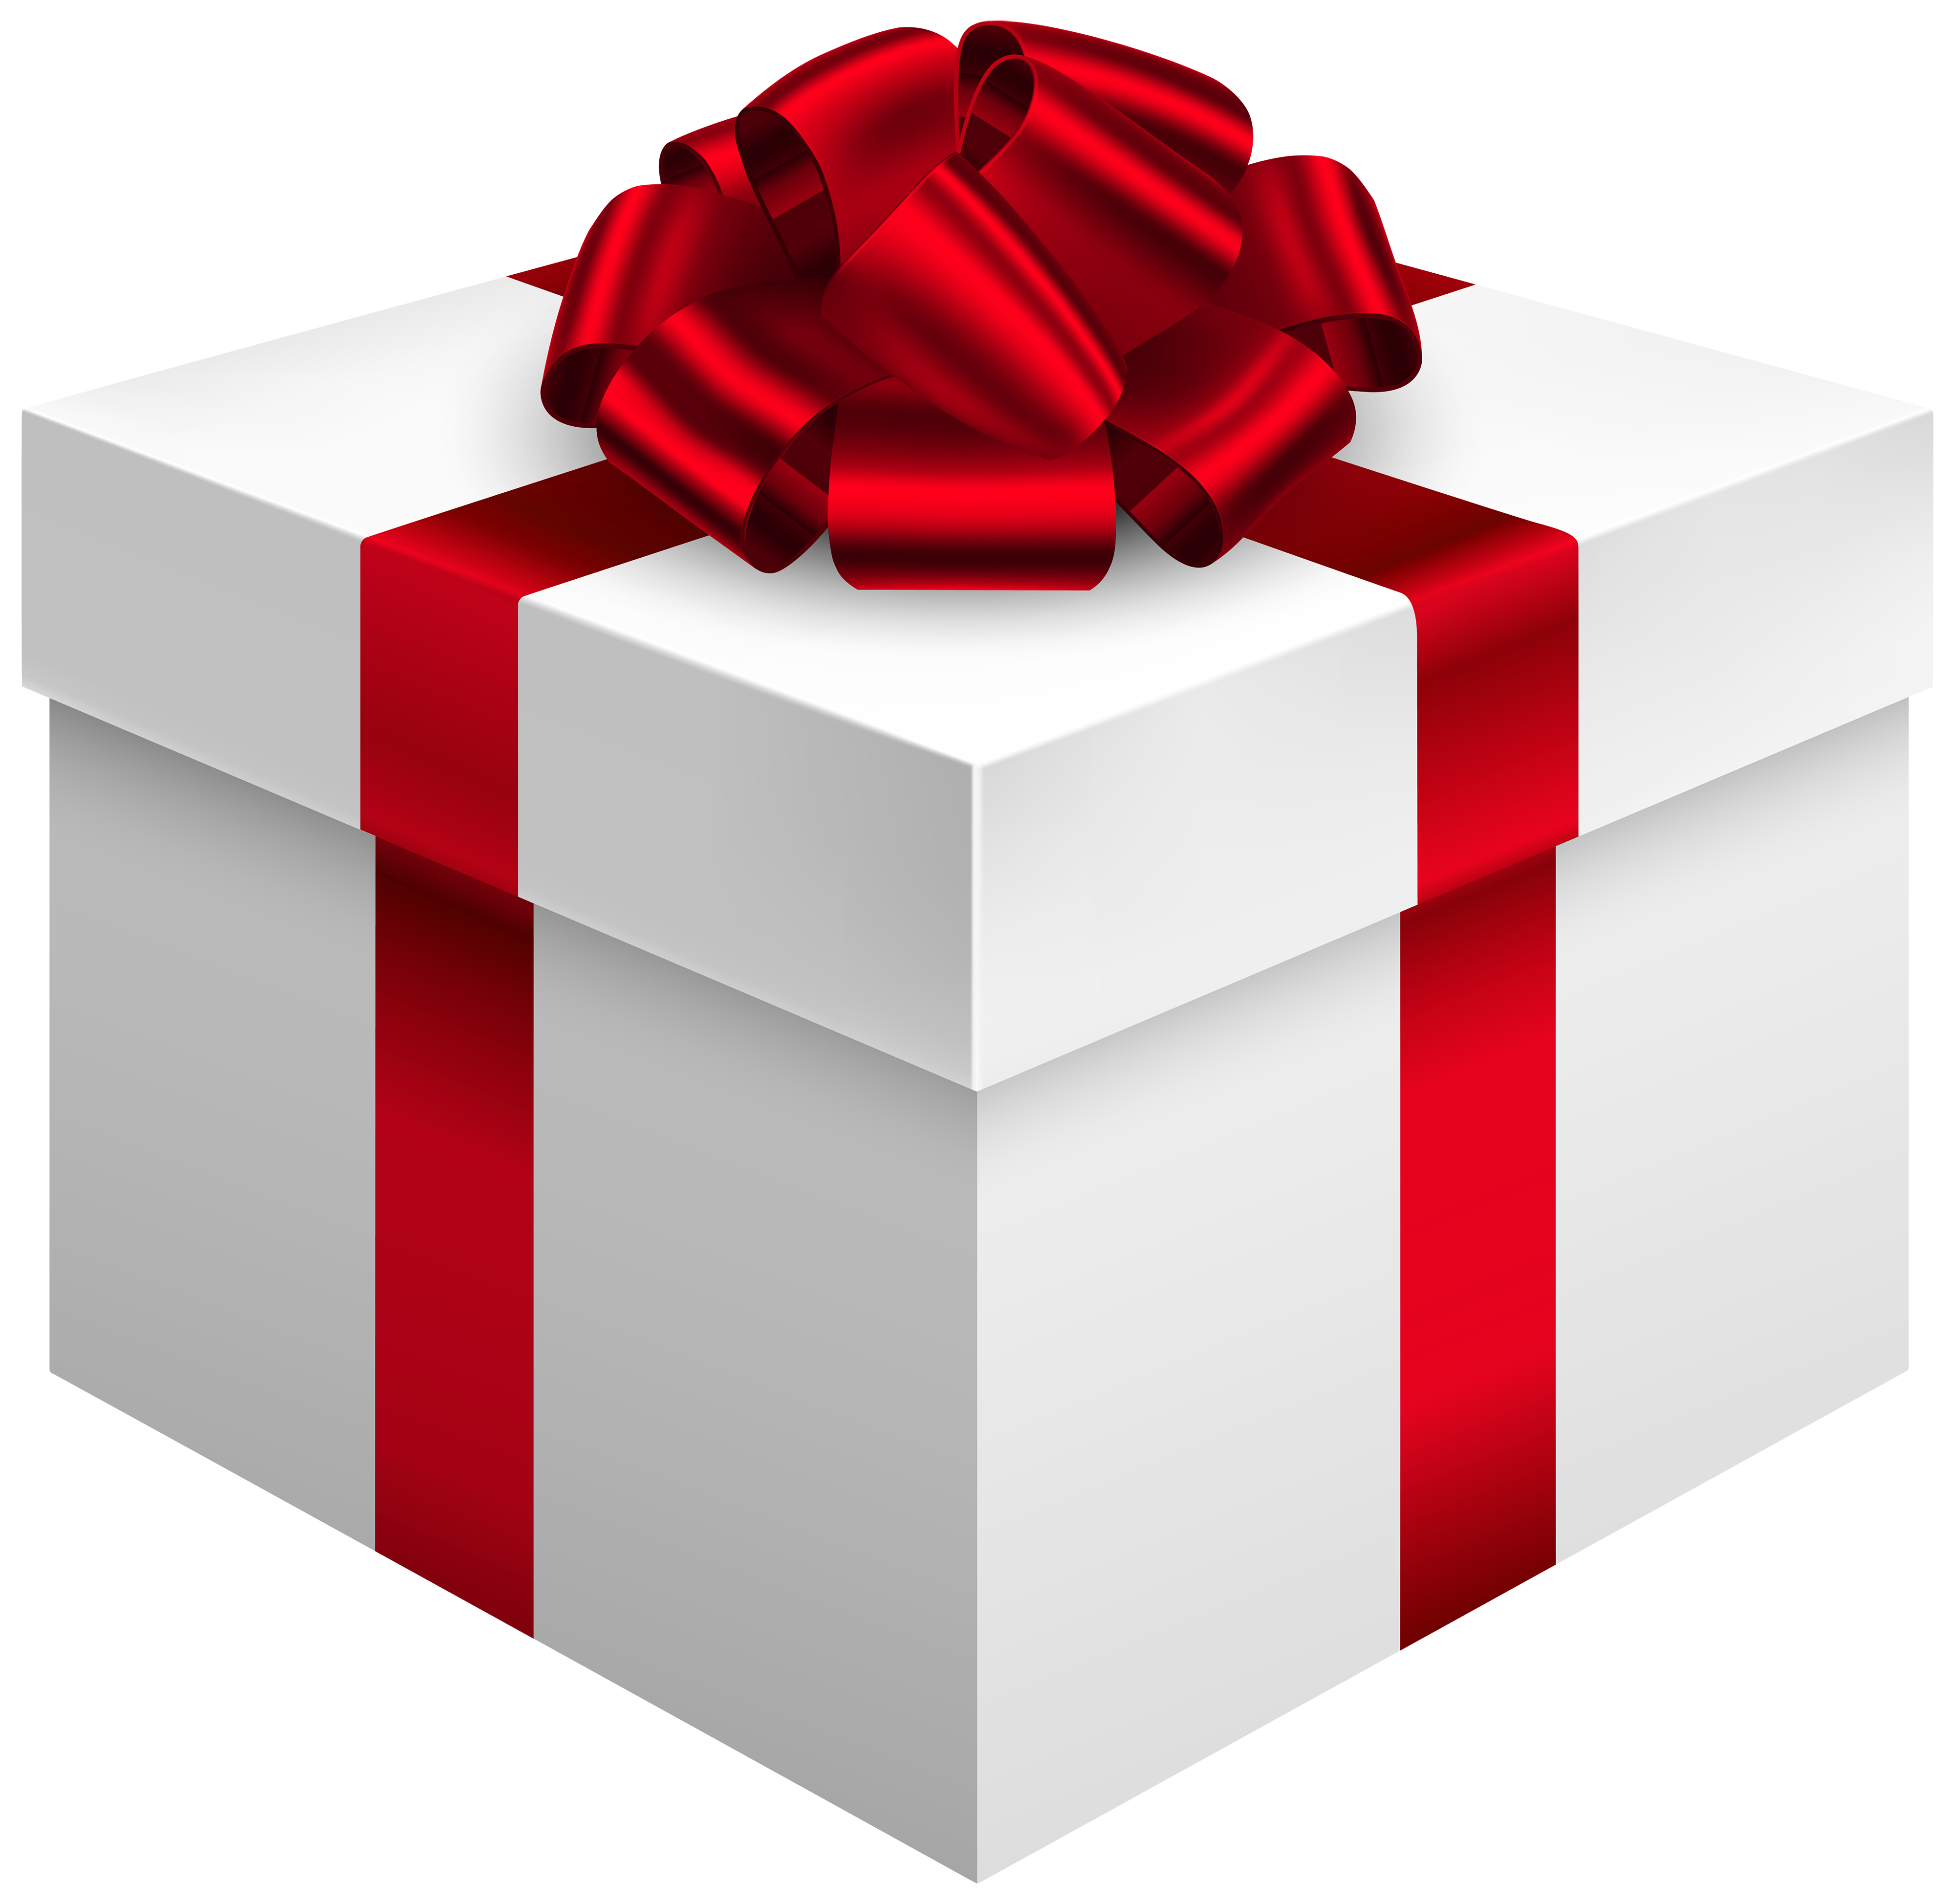 4000x3895 White Gift Box With Red Bow Png Clipart